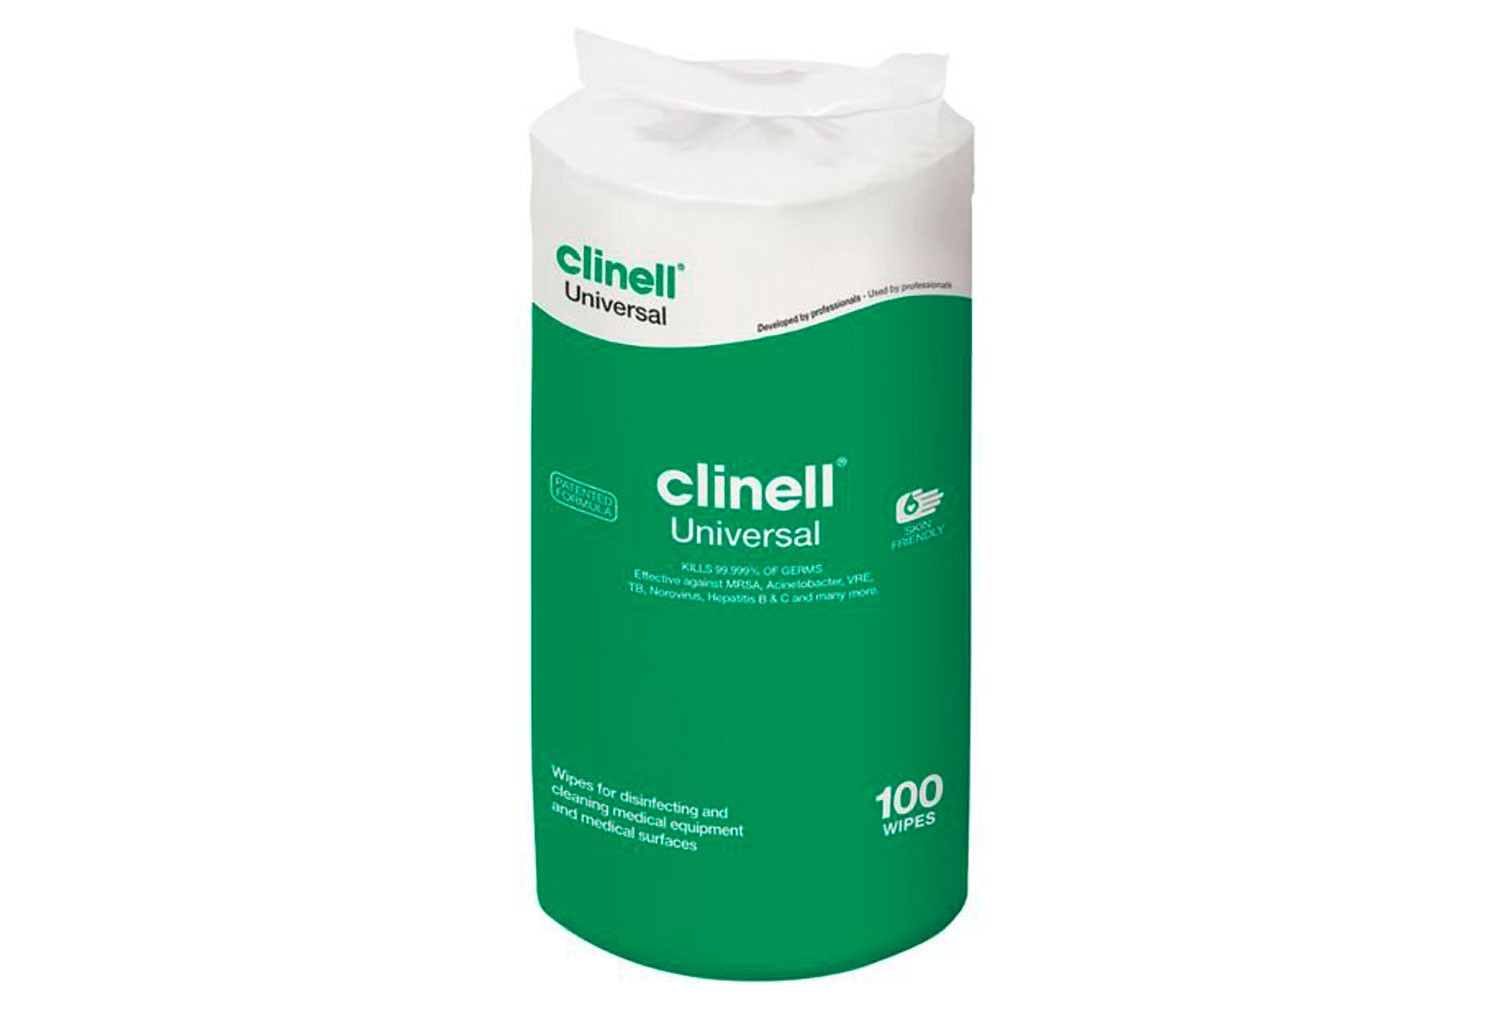 Refill For Clinell Universal Tub Wipes (100 Wipes) - NHS Approved NHSSC VJT224